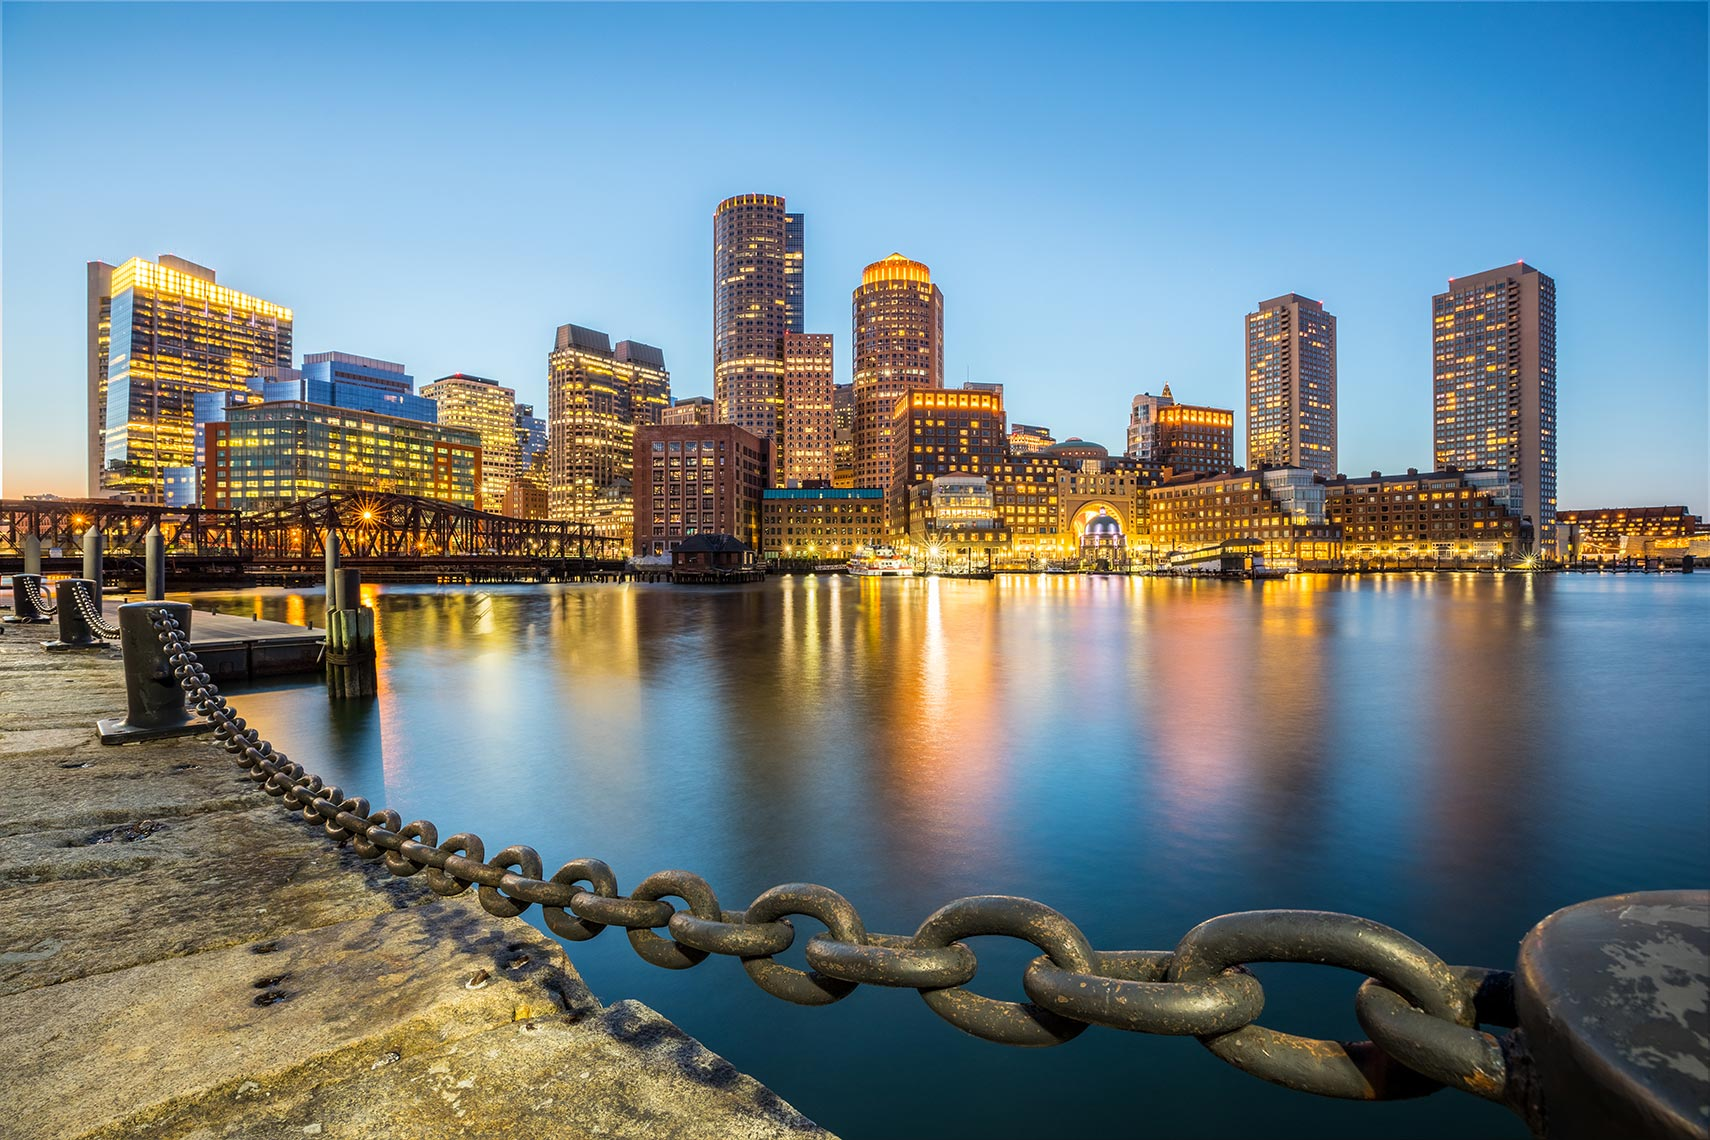 Skyline of Boston at night by Houston Travel Photographer Shannon O